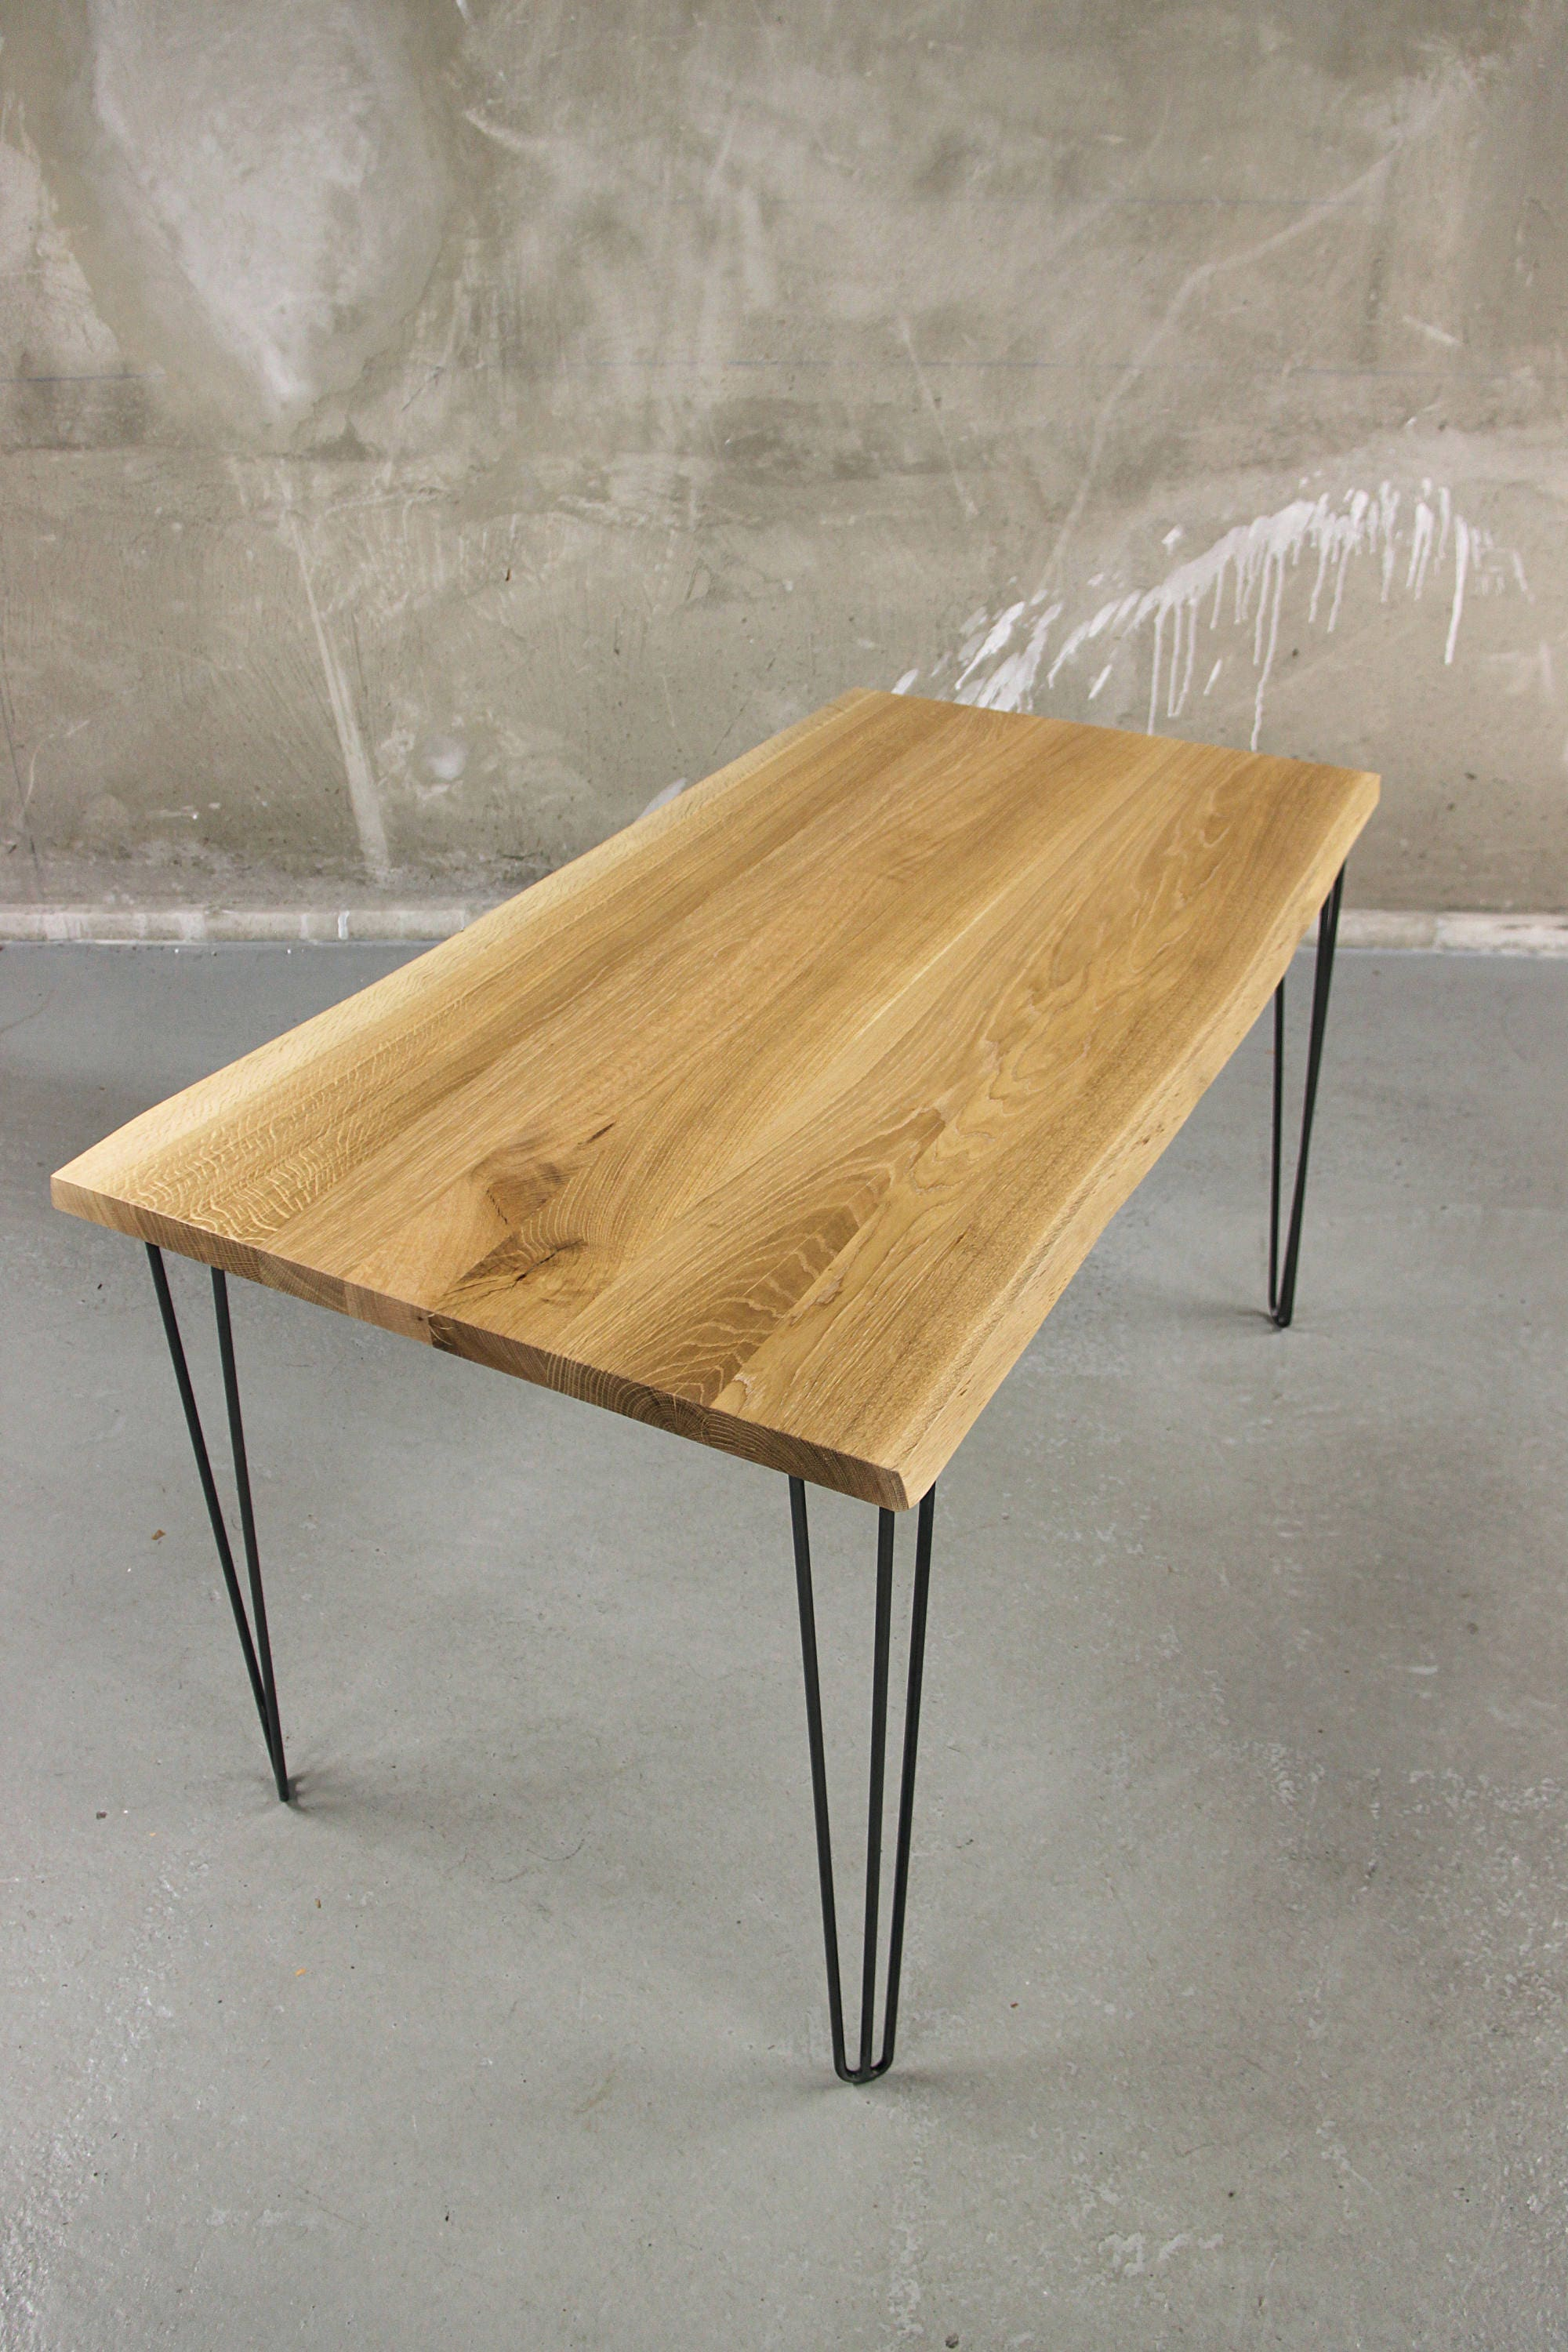 Solid oak dining table with hairpin legs